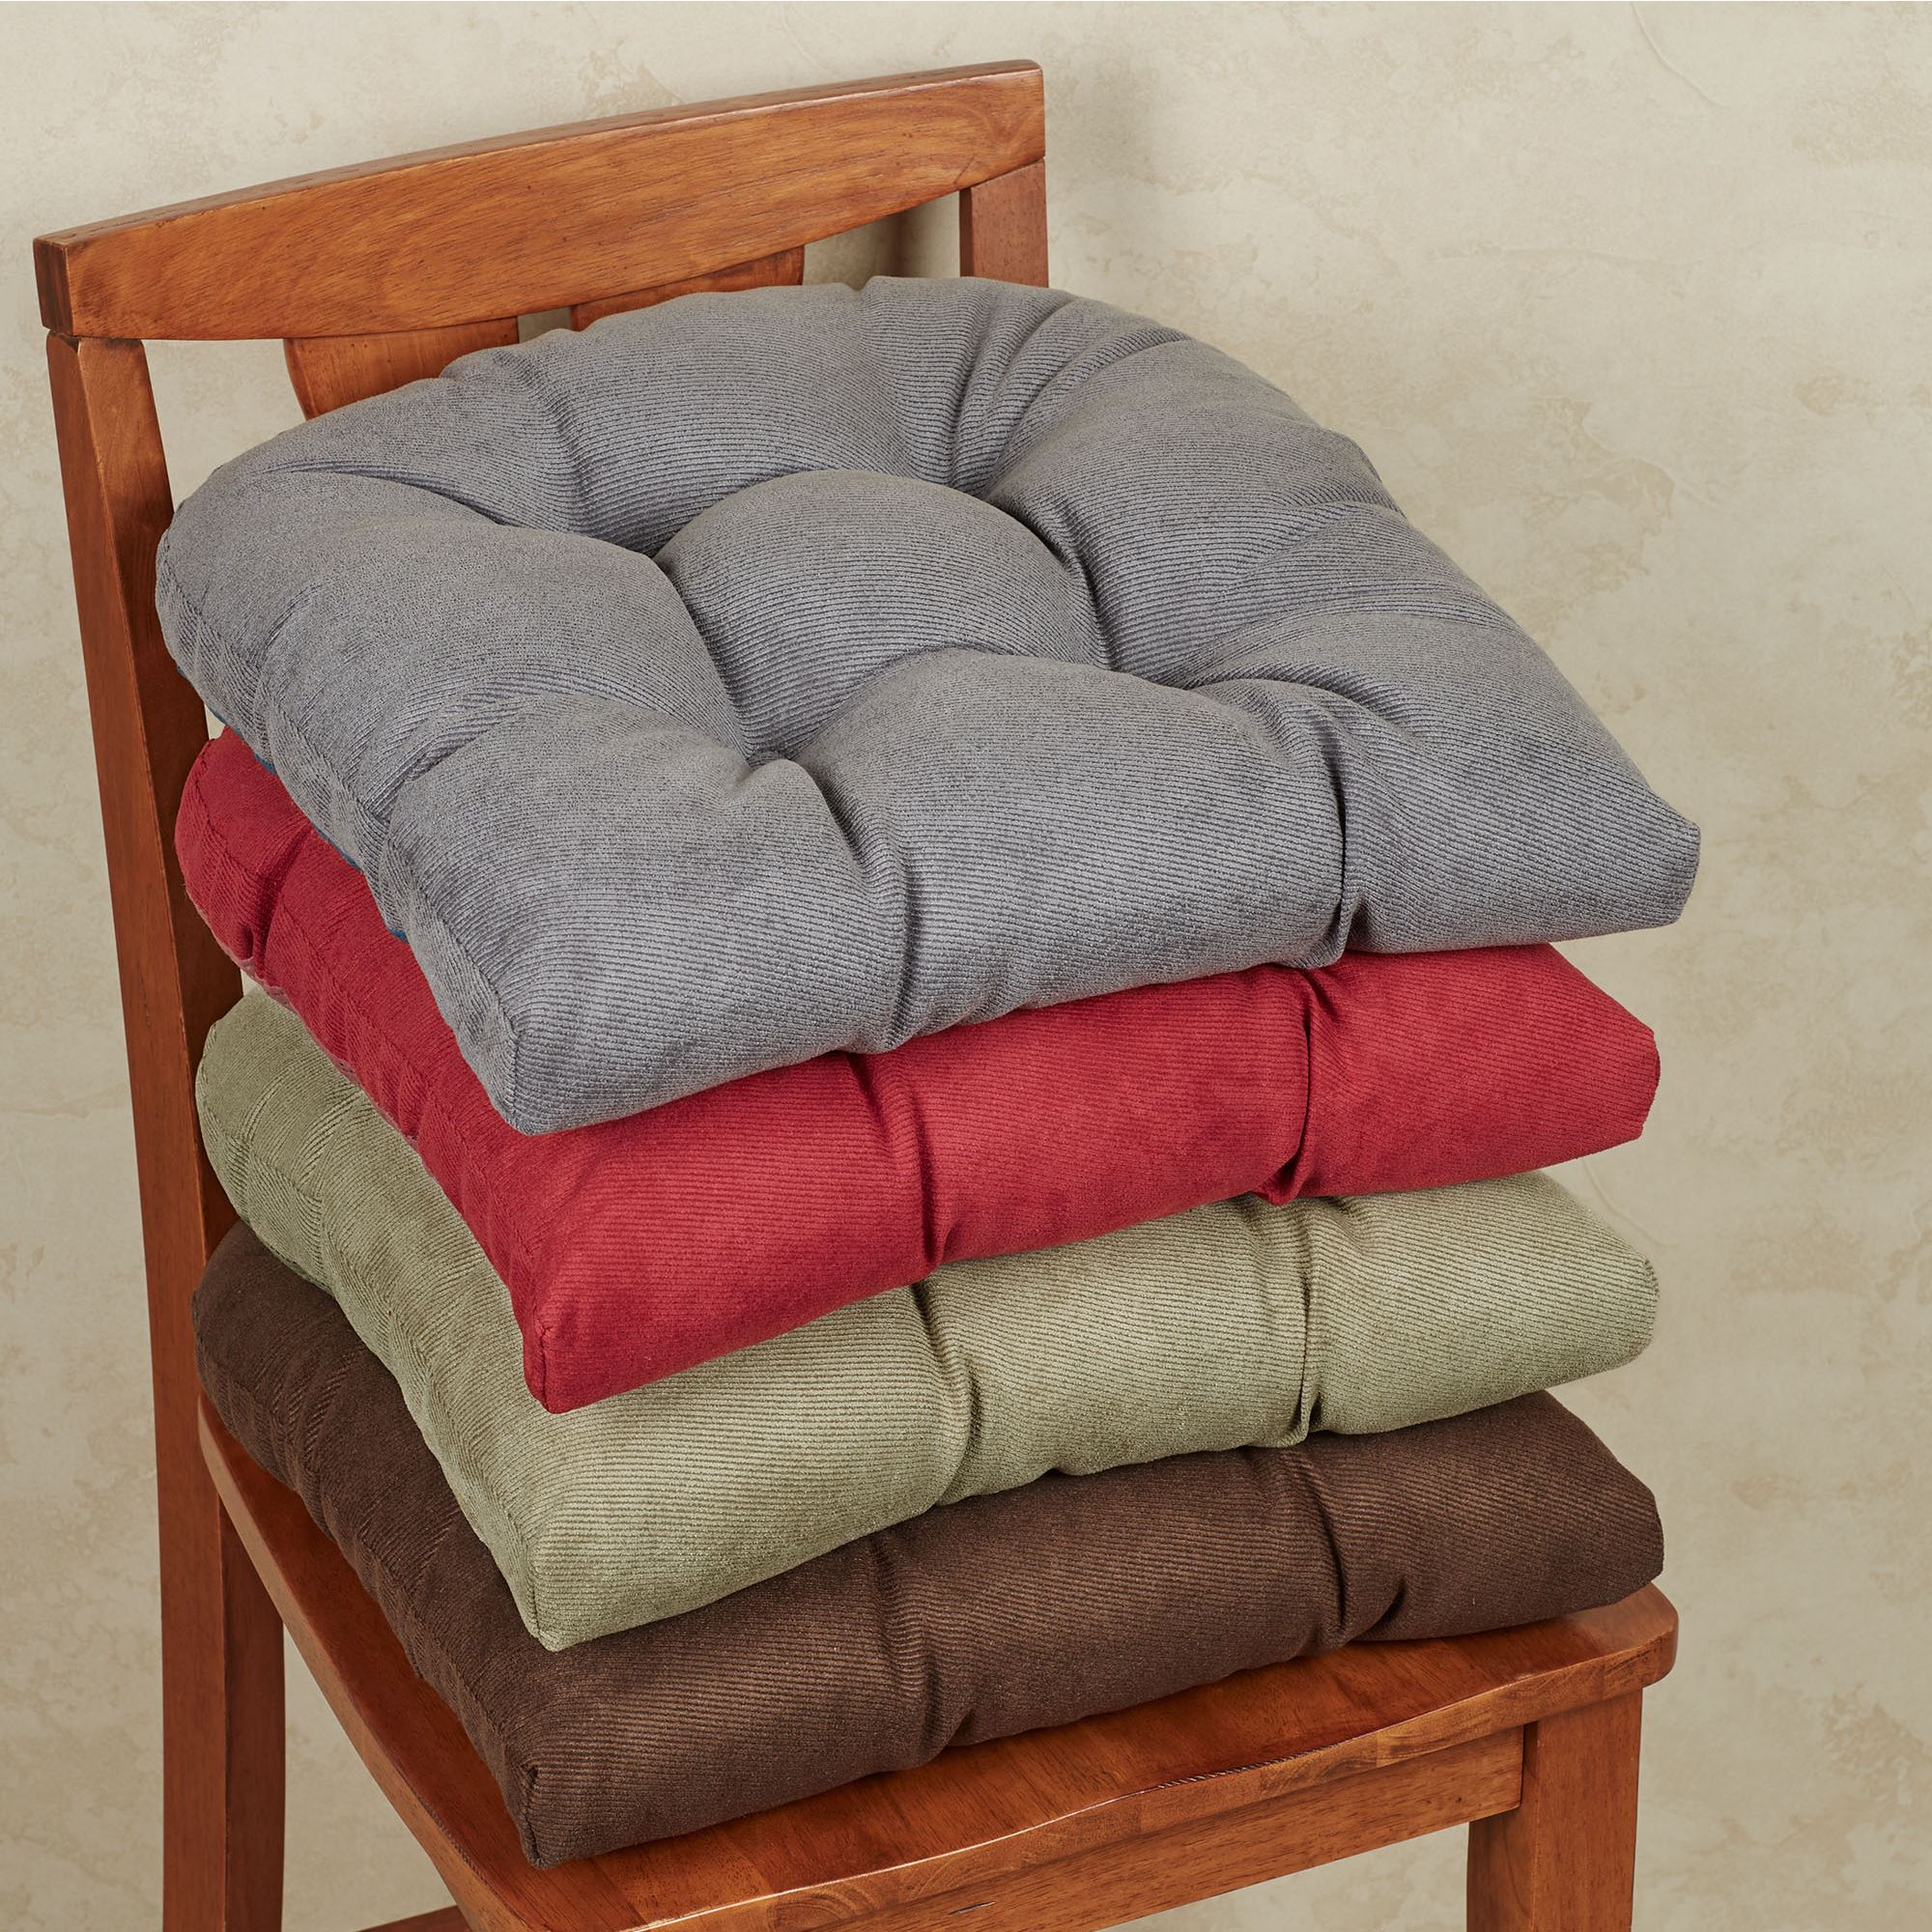 Fullsize Of Rocking Chair Cushions